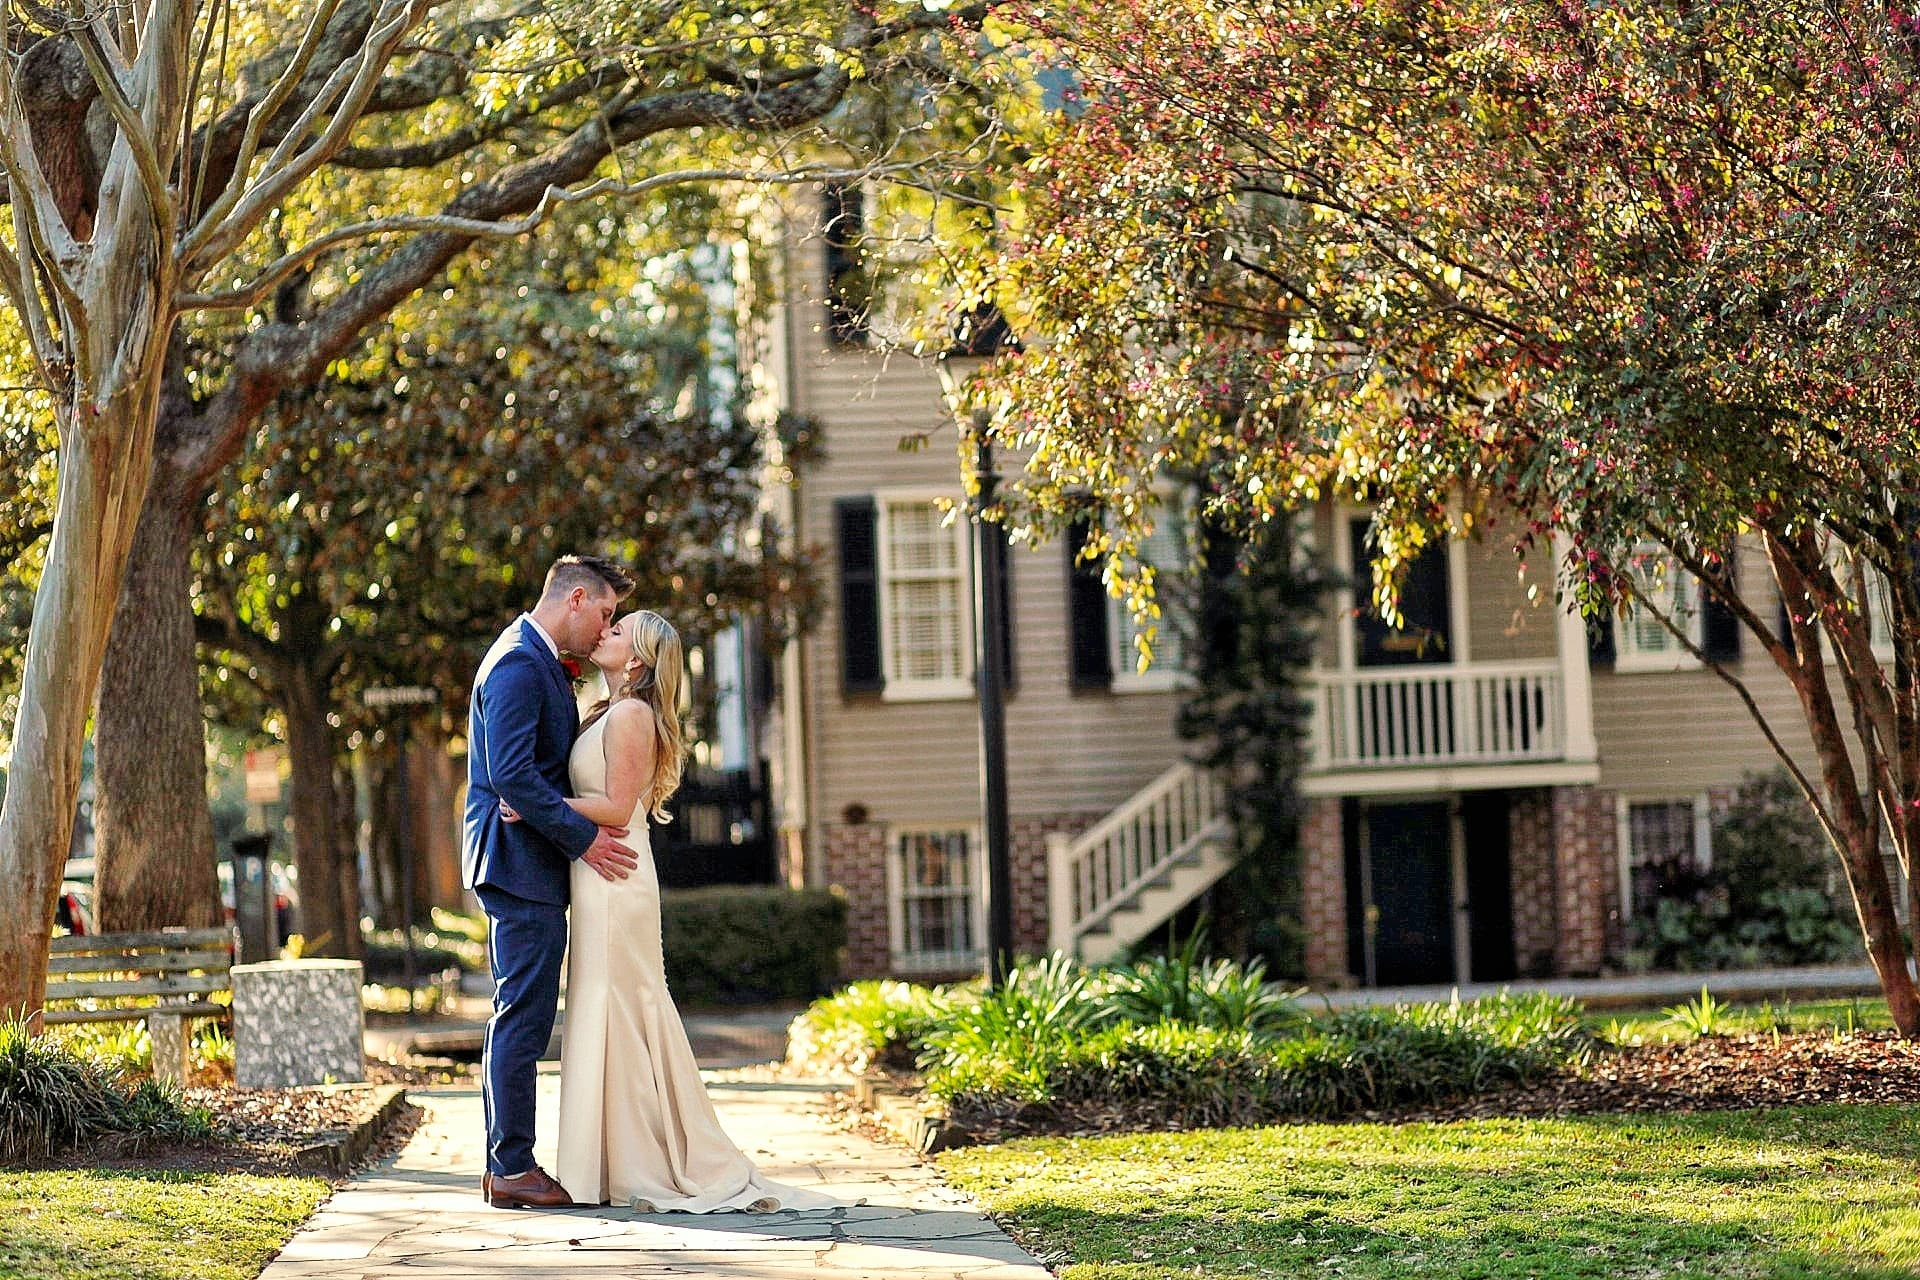 luxe-by-lindsay-savannah-ga-charleston-south-carolina-sc-lowcountry-wedding-photographer-bride-groom-kiss.jpg